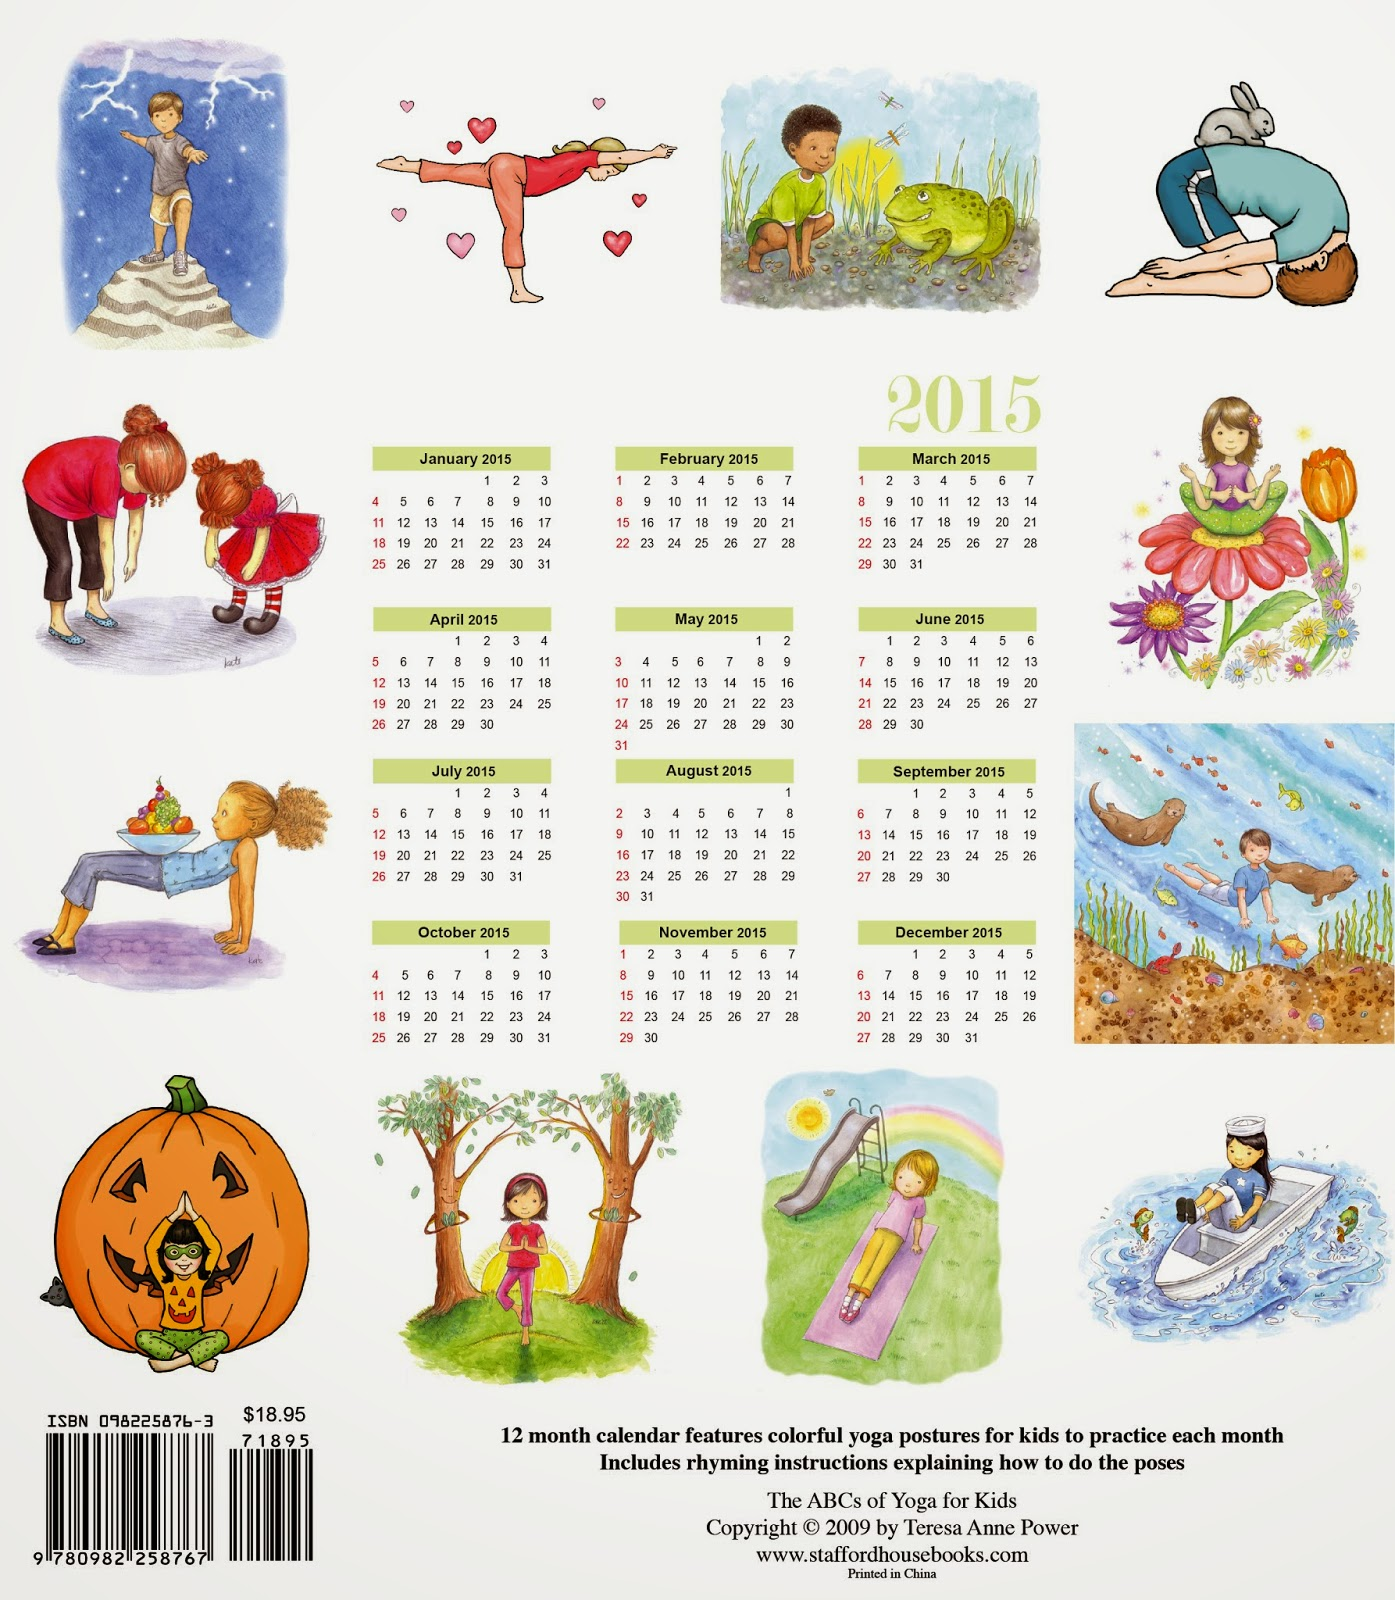 Yoga for kids abcs of yoga for kids 2015 calendar yoga for kids altavistaventures Images